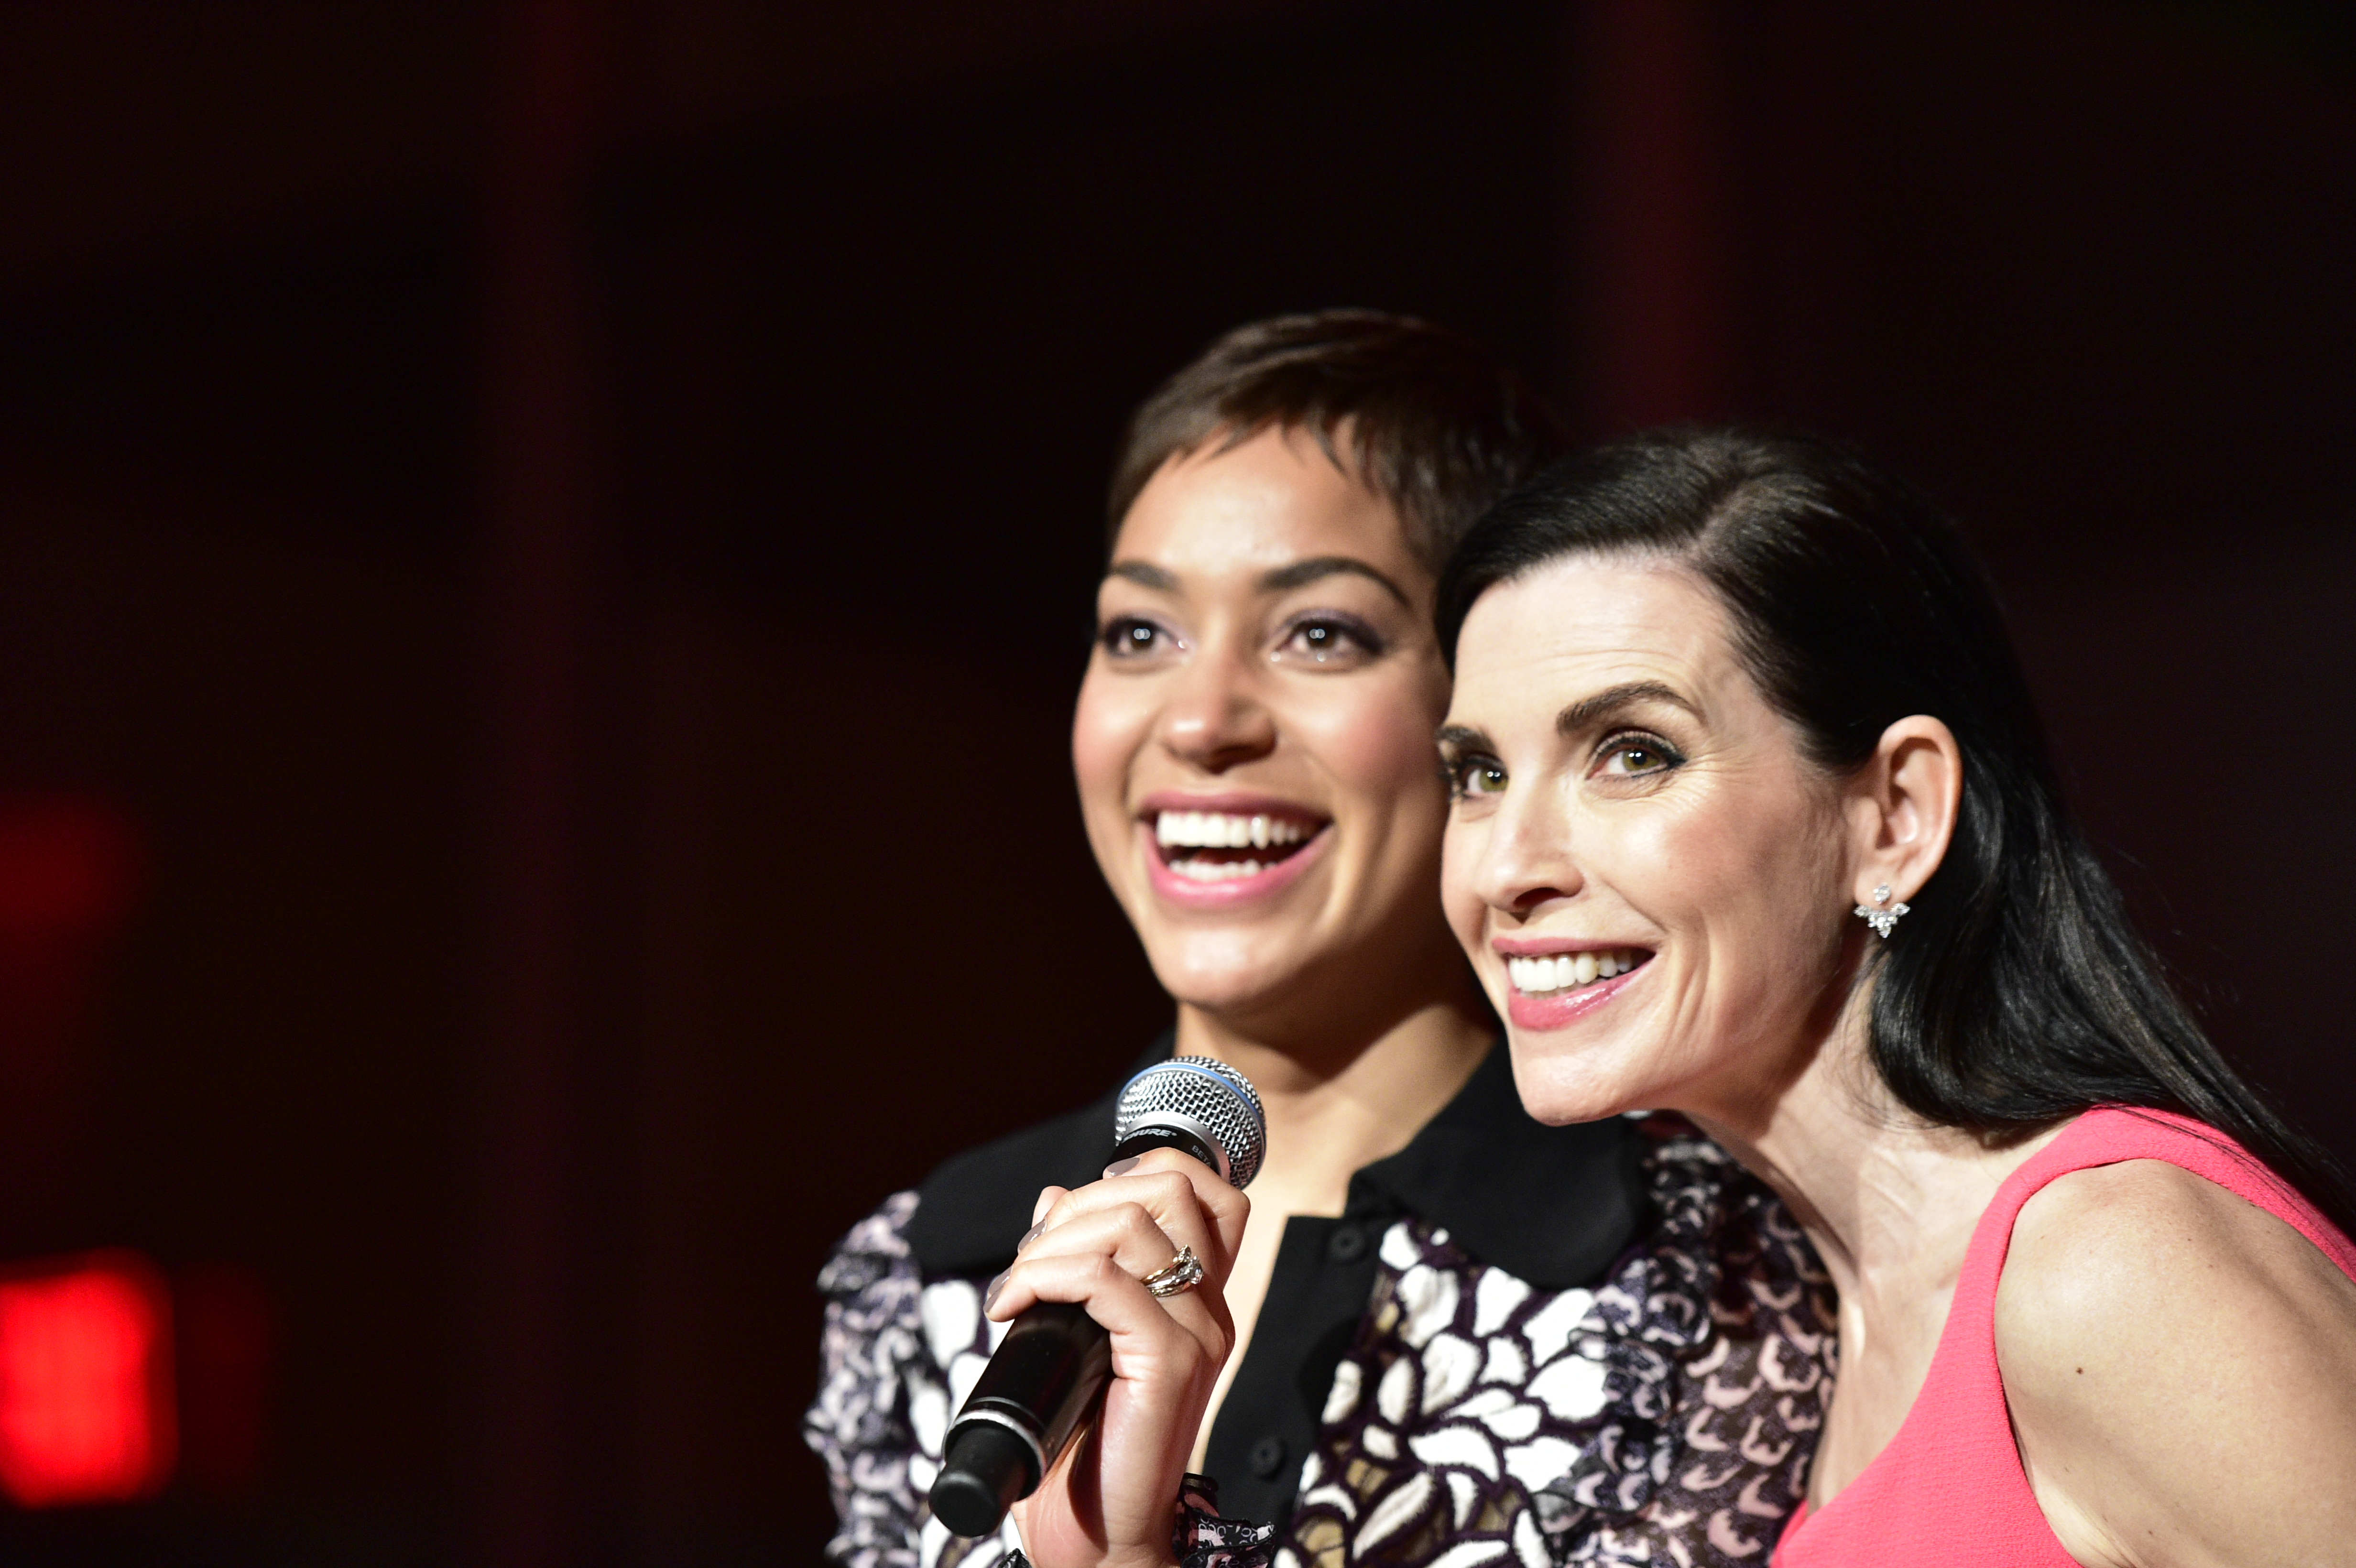 Cush Jumbo and Julianna Margulies